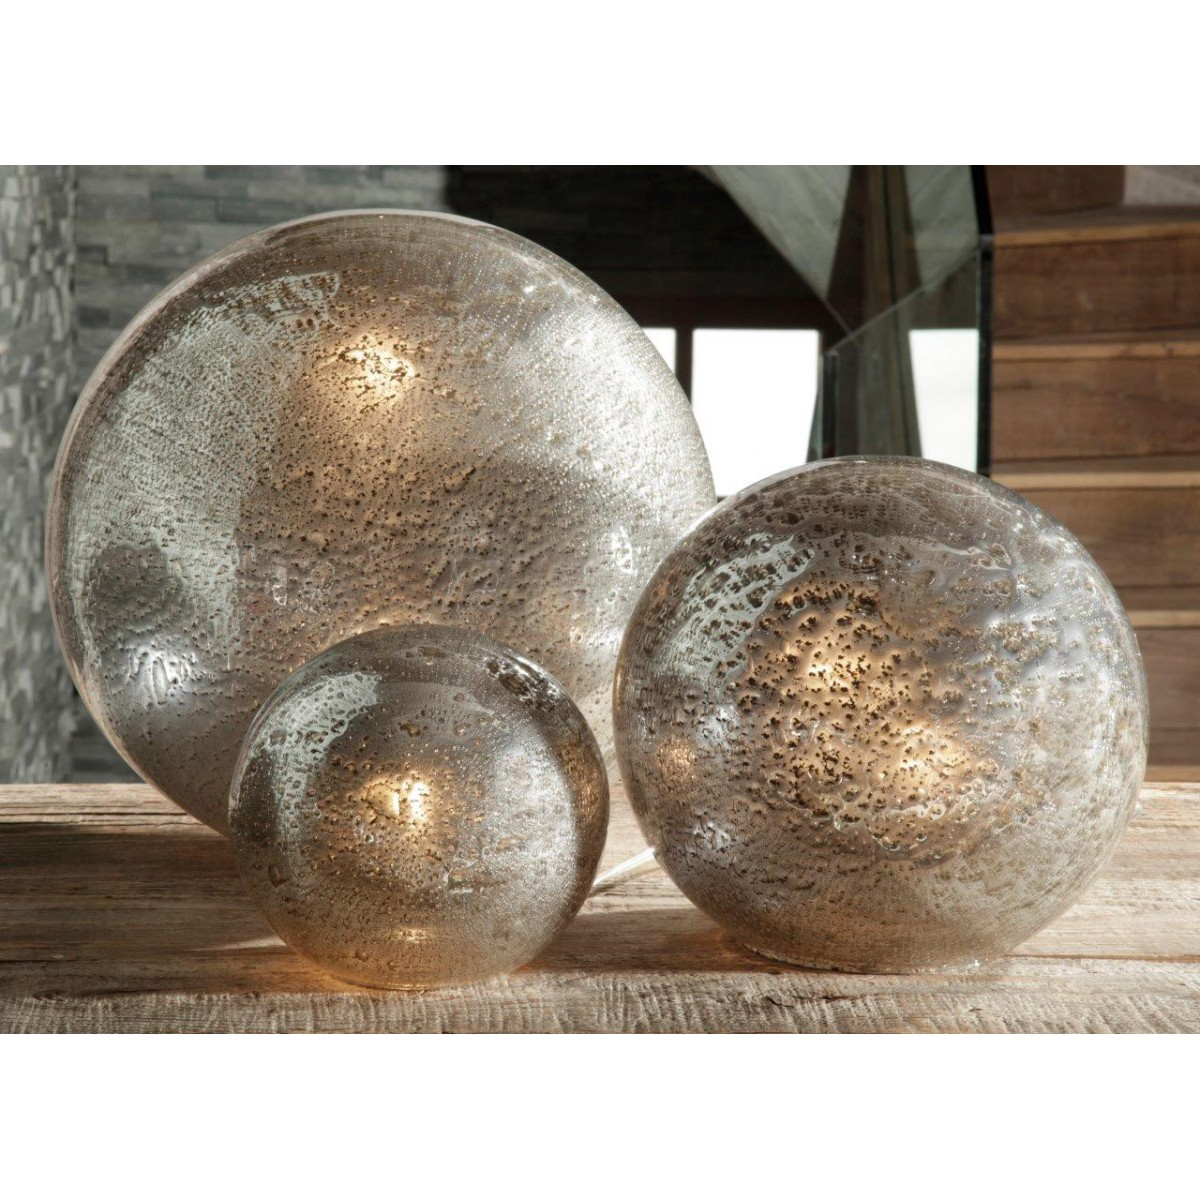 lampe poser angel des montagnes boule fusion en verre. Black Bedroom Furniture Sets. Home Design Ideas